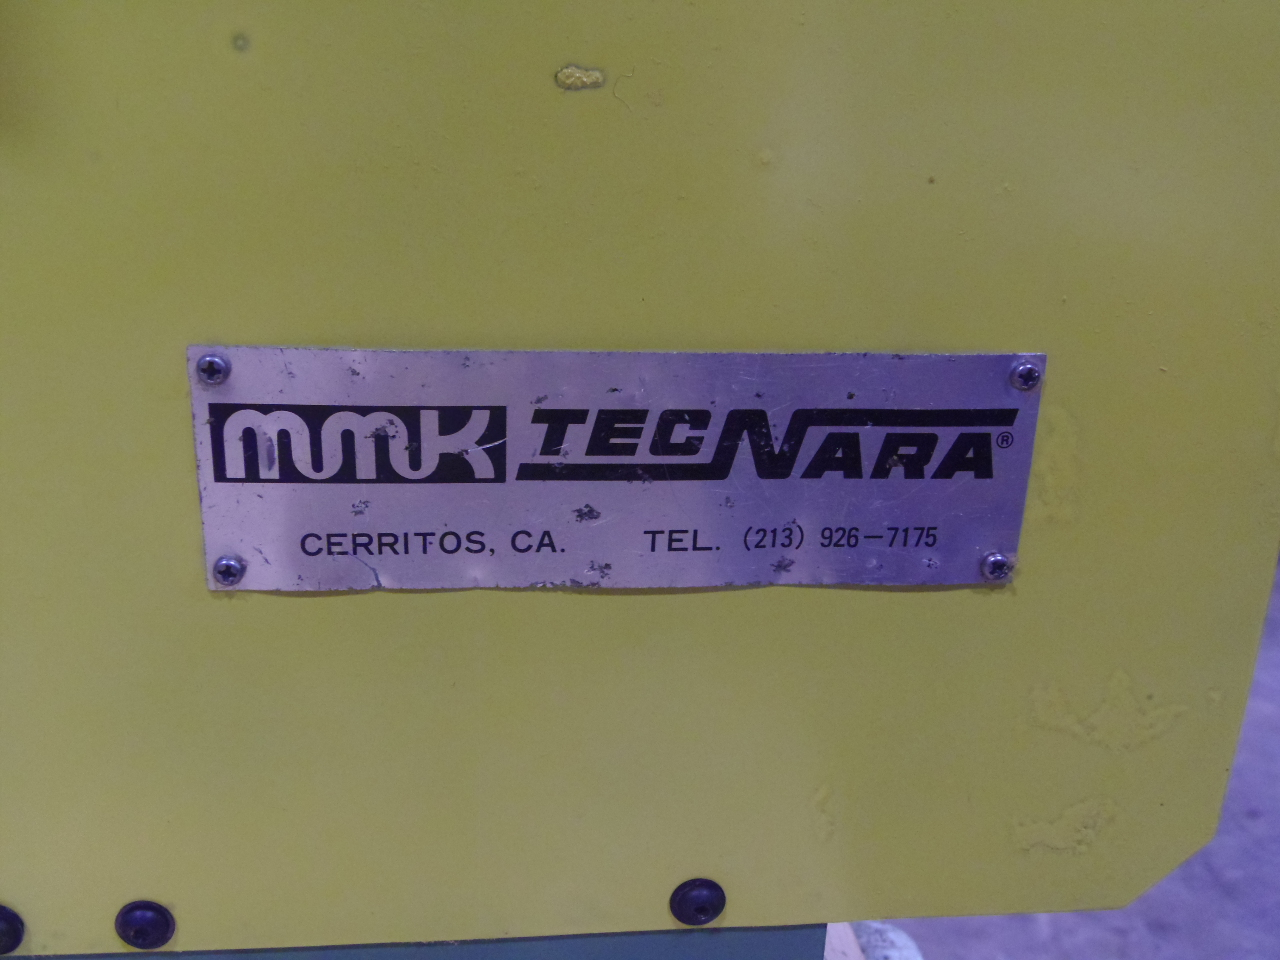 "12"" MMK TECNARA ROTARY INDEX TABLE, 300 MM, 4.5"" HOLE, MODEL MMK-300, TAILSTOCK, CABLES"